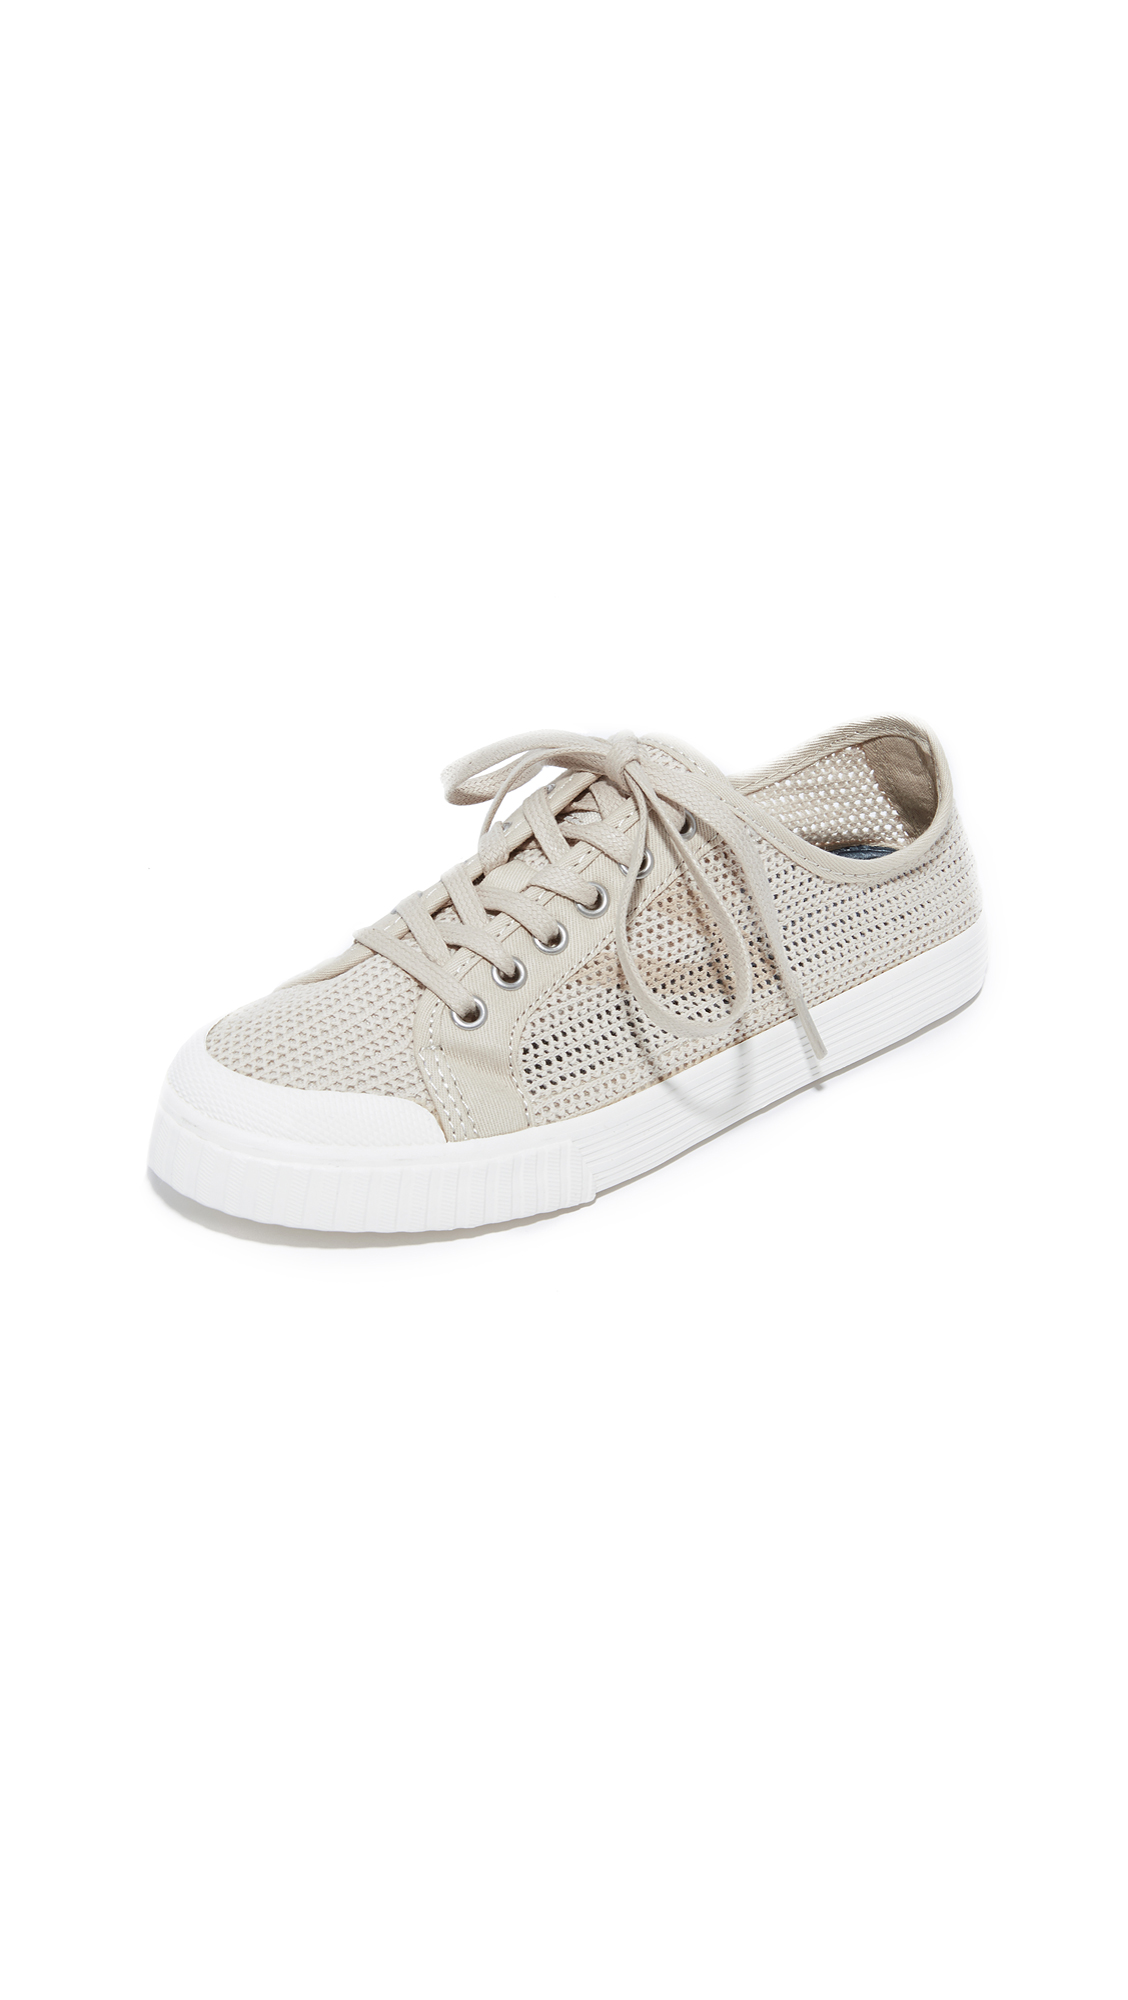 Tretorn Tournament Net Sneakers - Sand